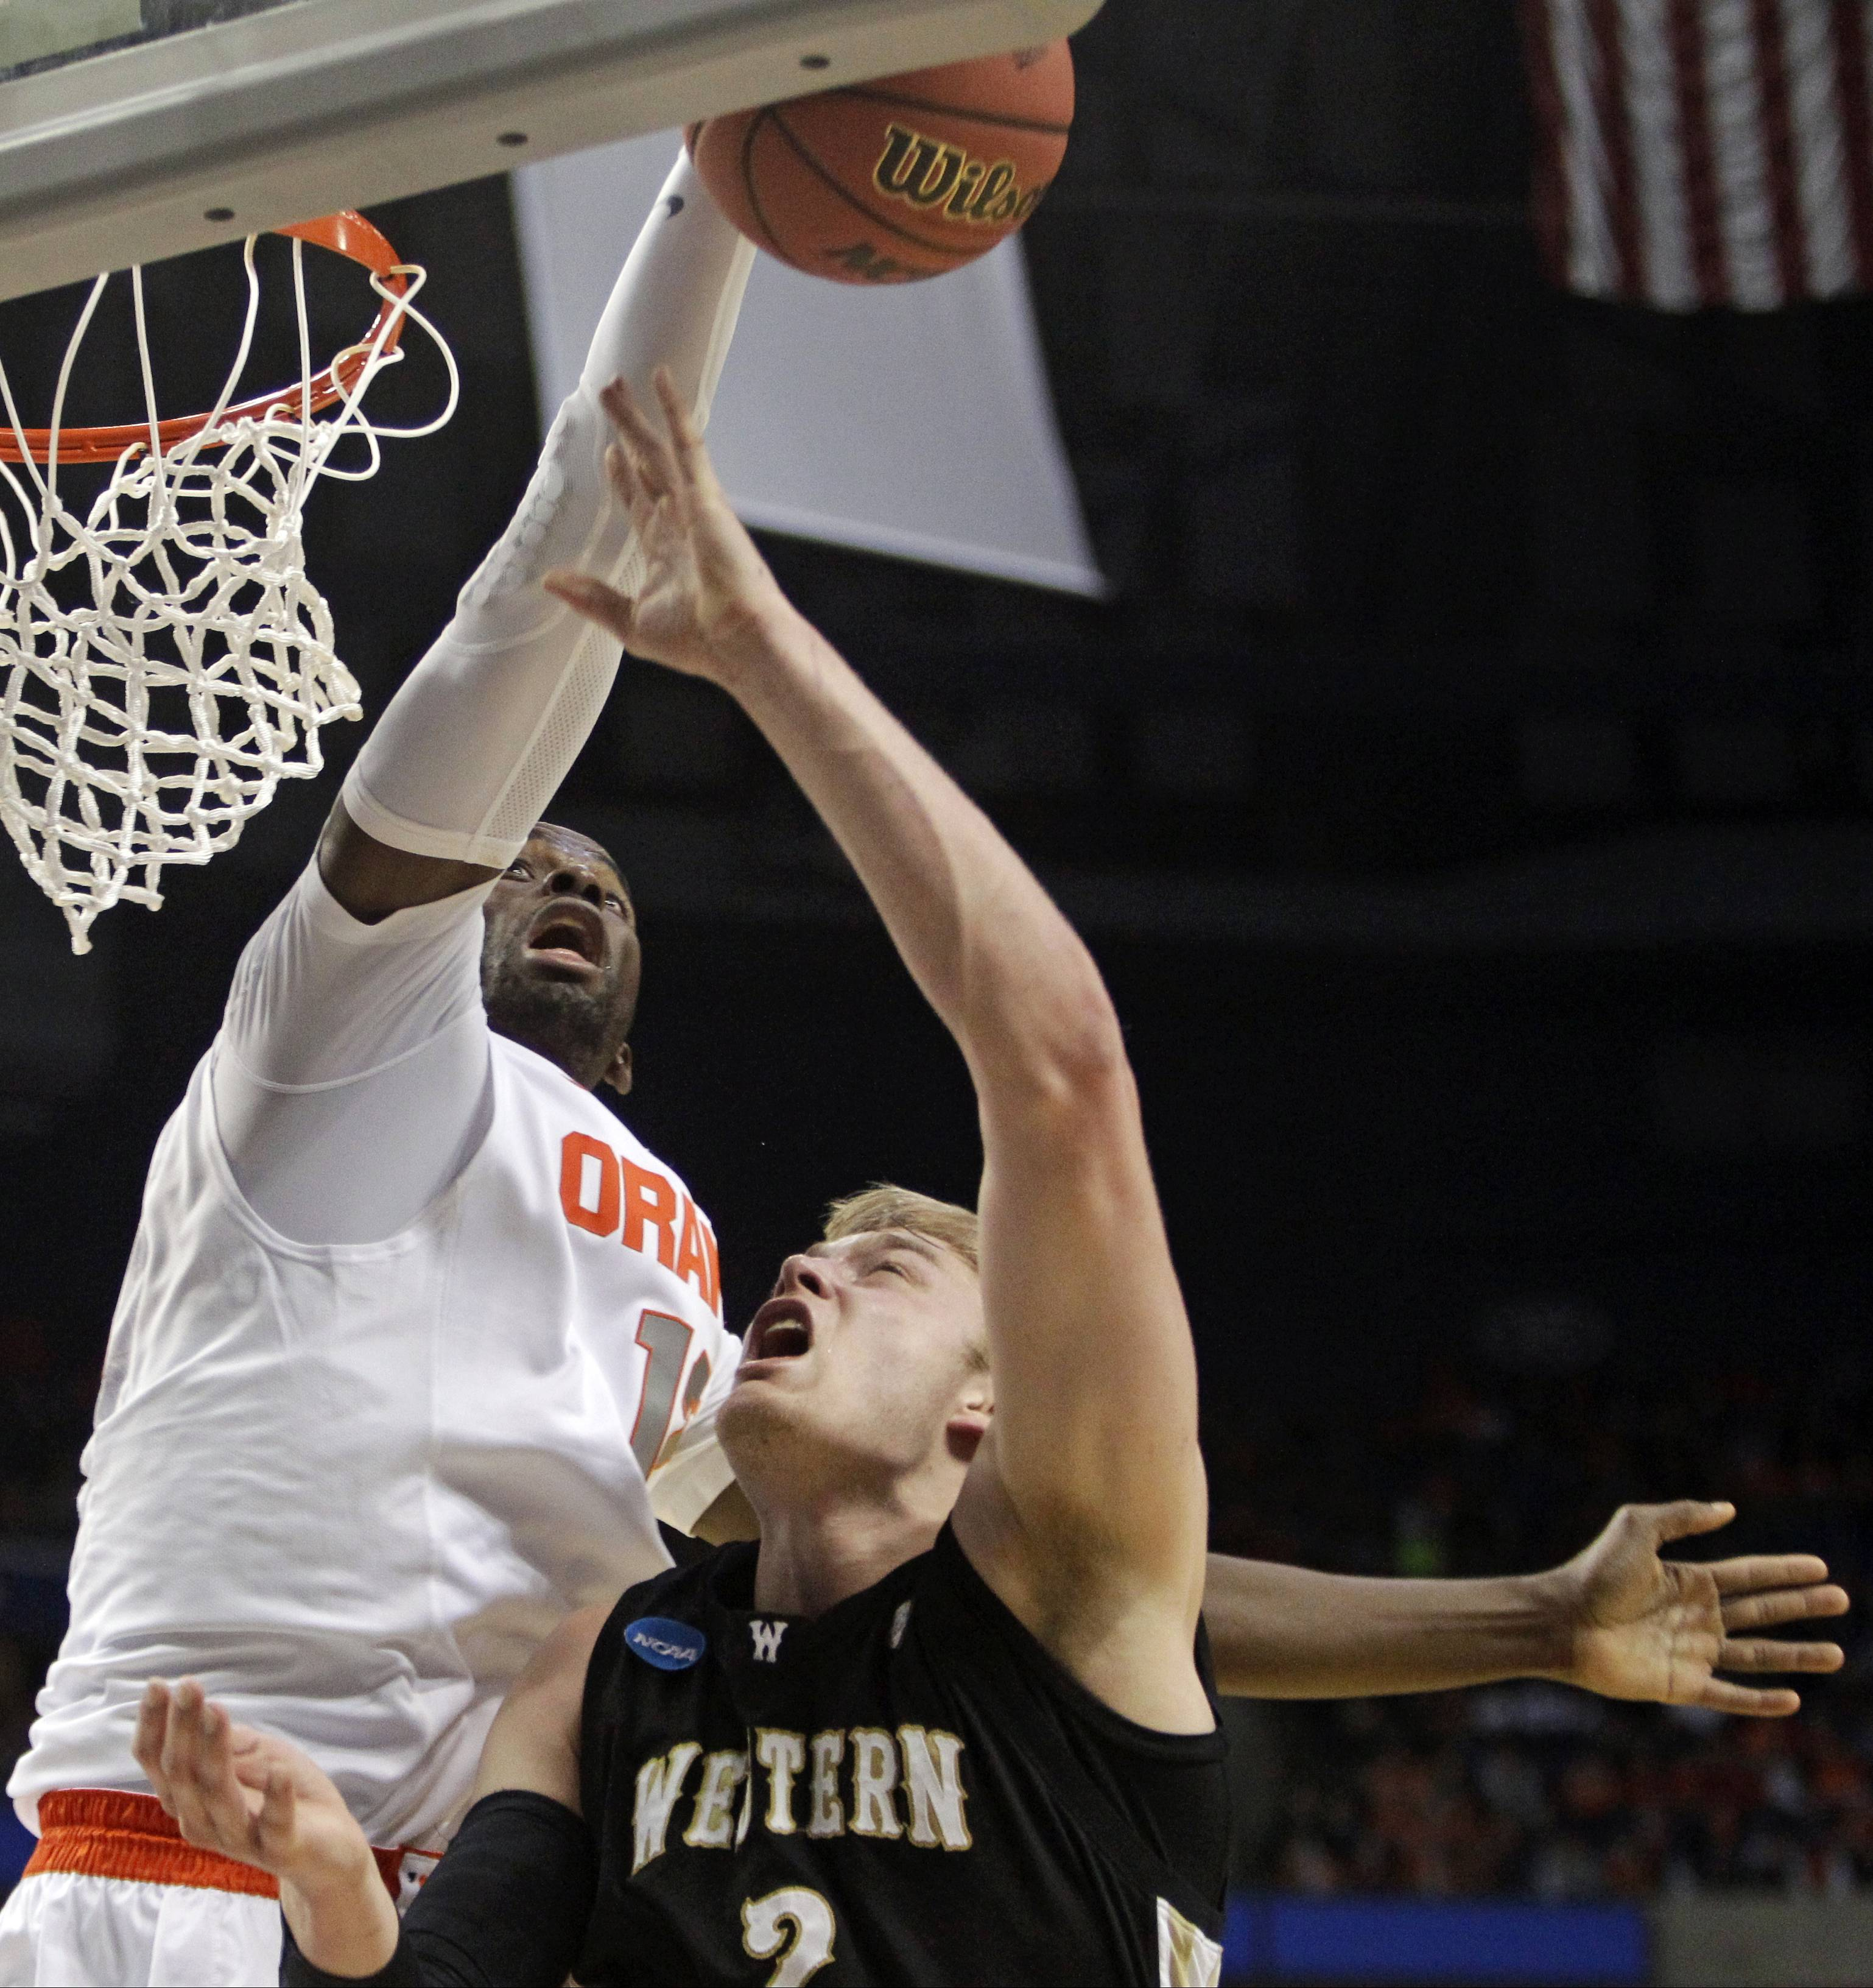 Syracuse's Baye-Moussa Keita, left, blocks a shot by Western Michigan's Connar Tava during the second half of a second-round game in the NCAA college basketball tournament in Buffalo, N.Y., Thursday, March 20, 2014. (AP Photo/Bill Wippert)